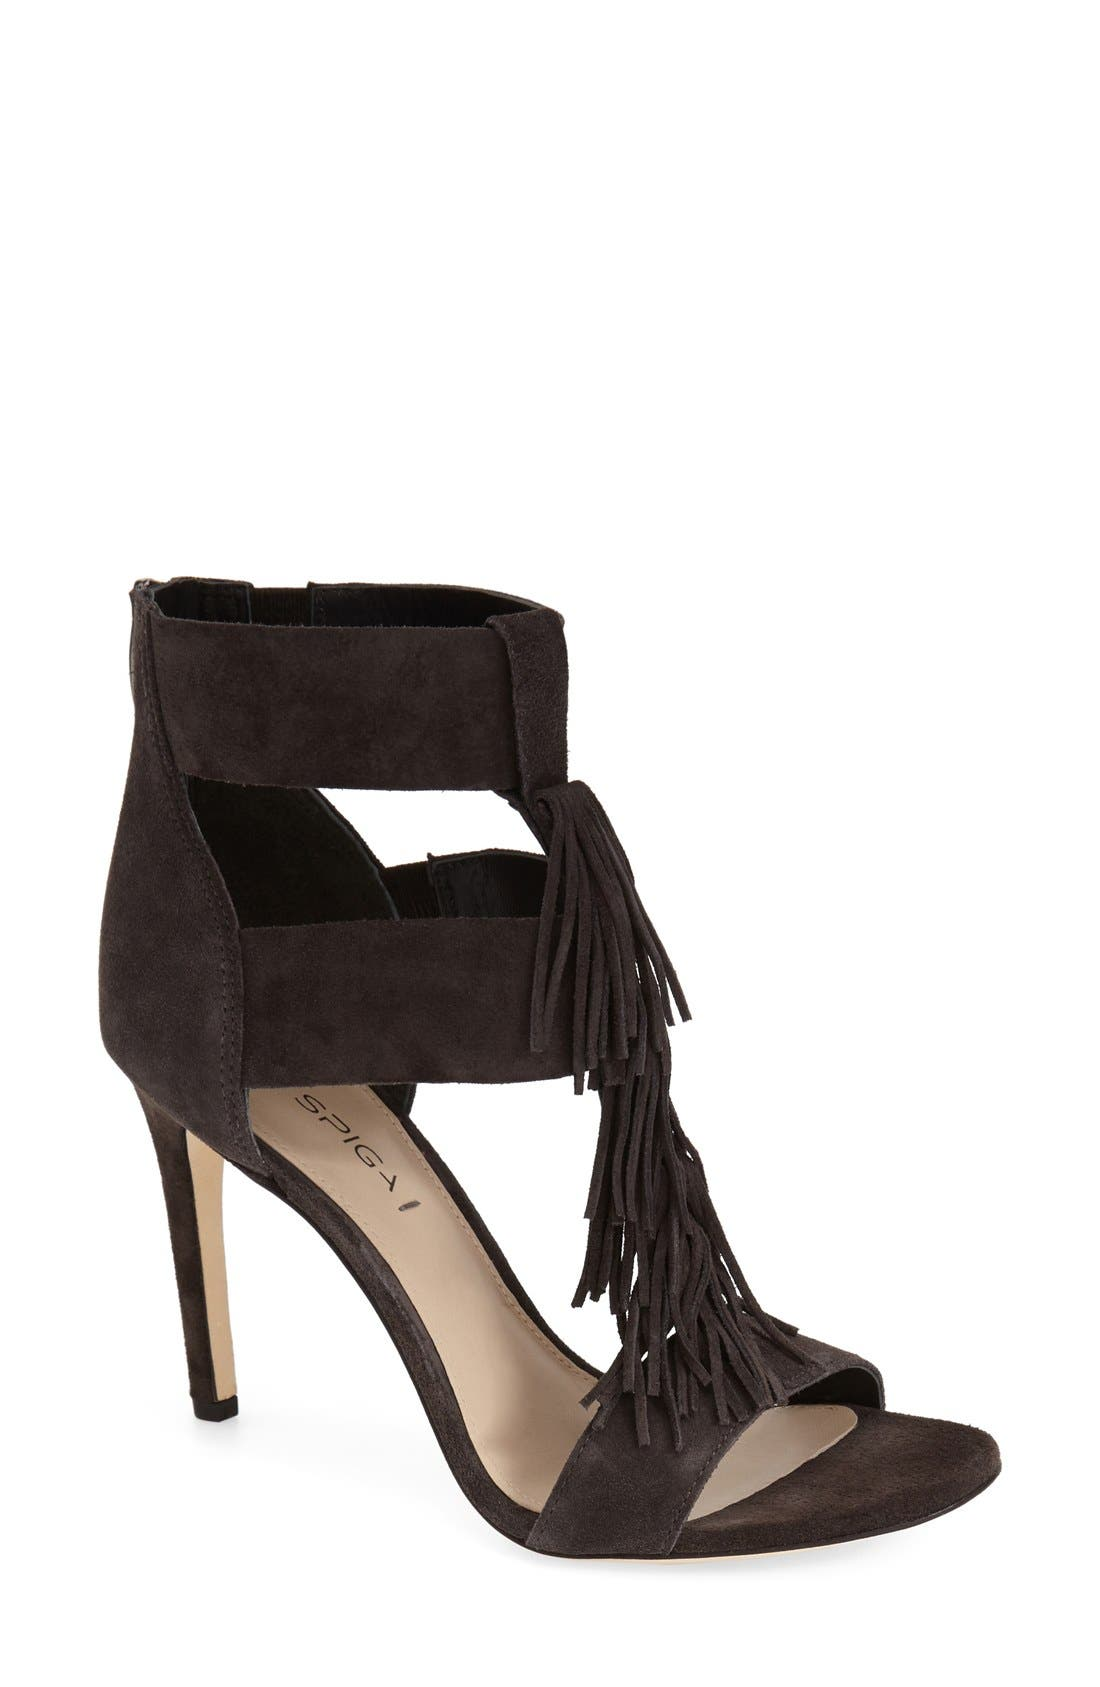 Main Image - Via Spiga 'Eilish' Fringe Sandal (Women)